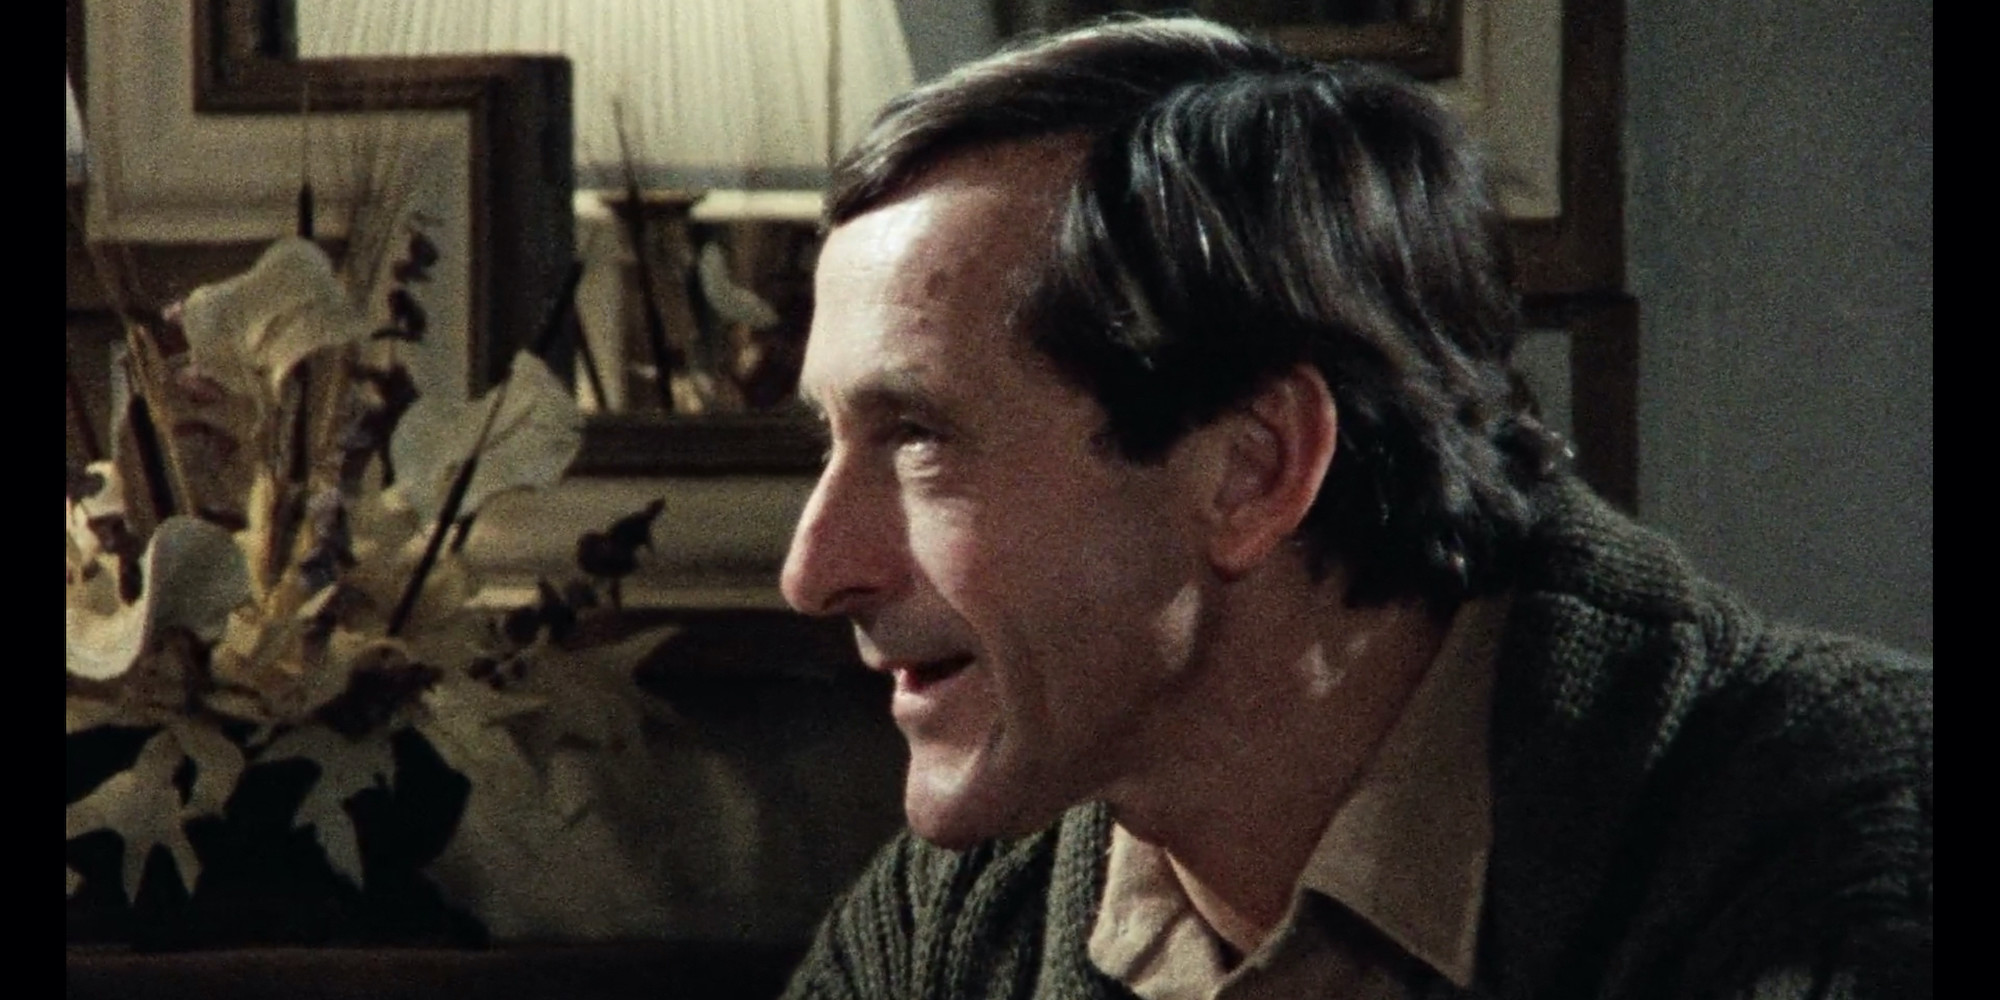 Louis Malle, My Dinner with André, 1981. André Gregory. edit